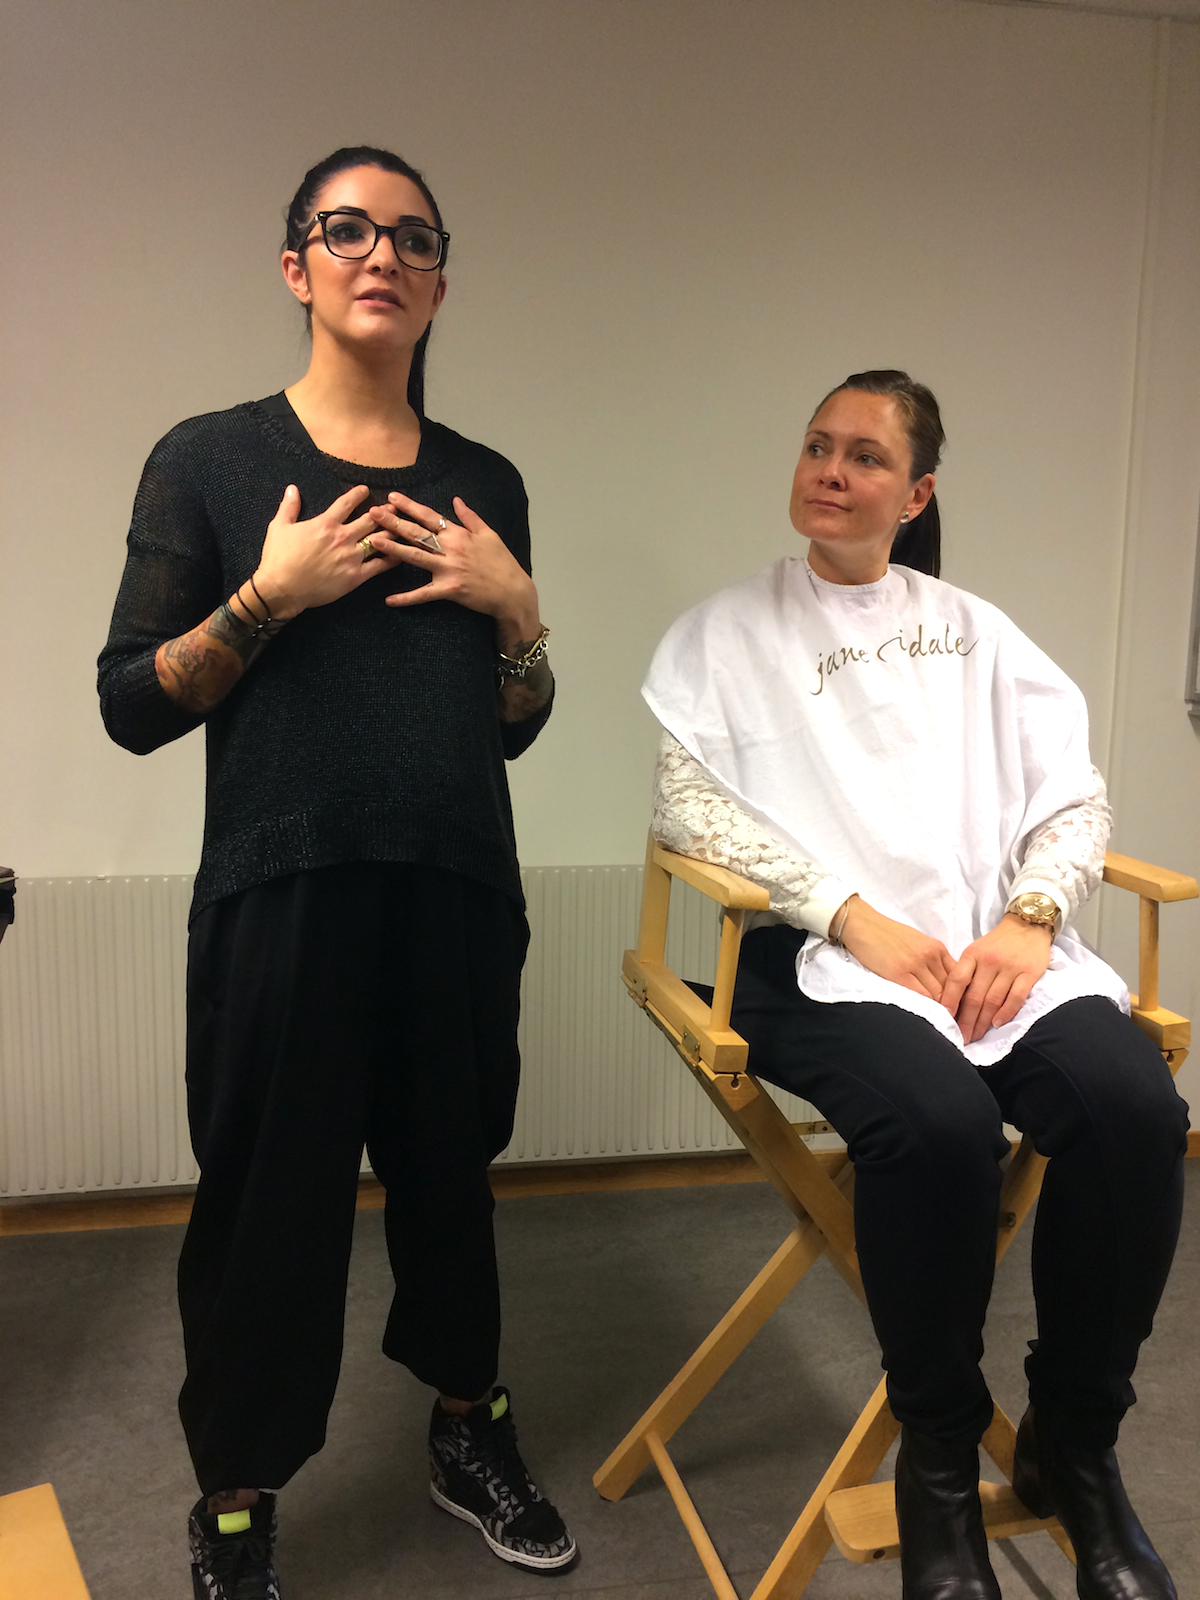 hanna hatcher jane iredale with model|skonhetssnack.se